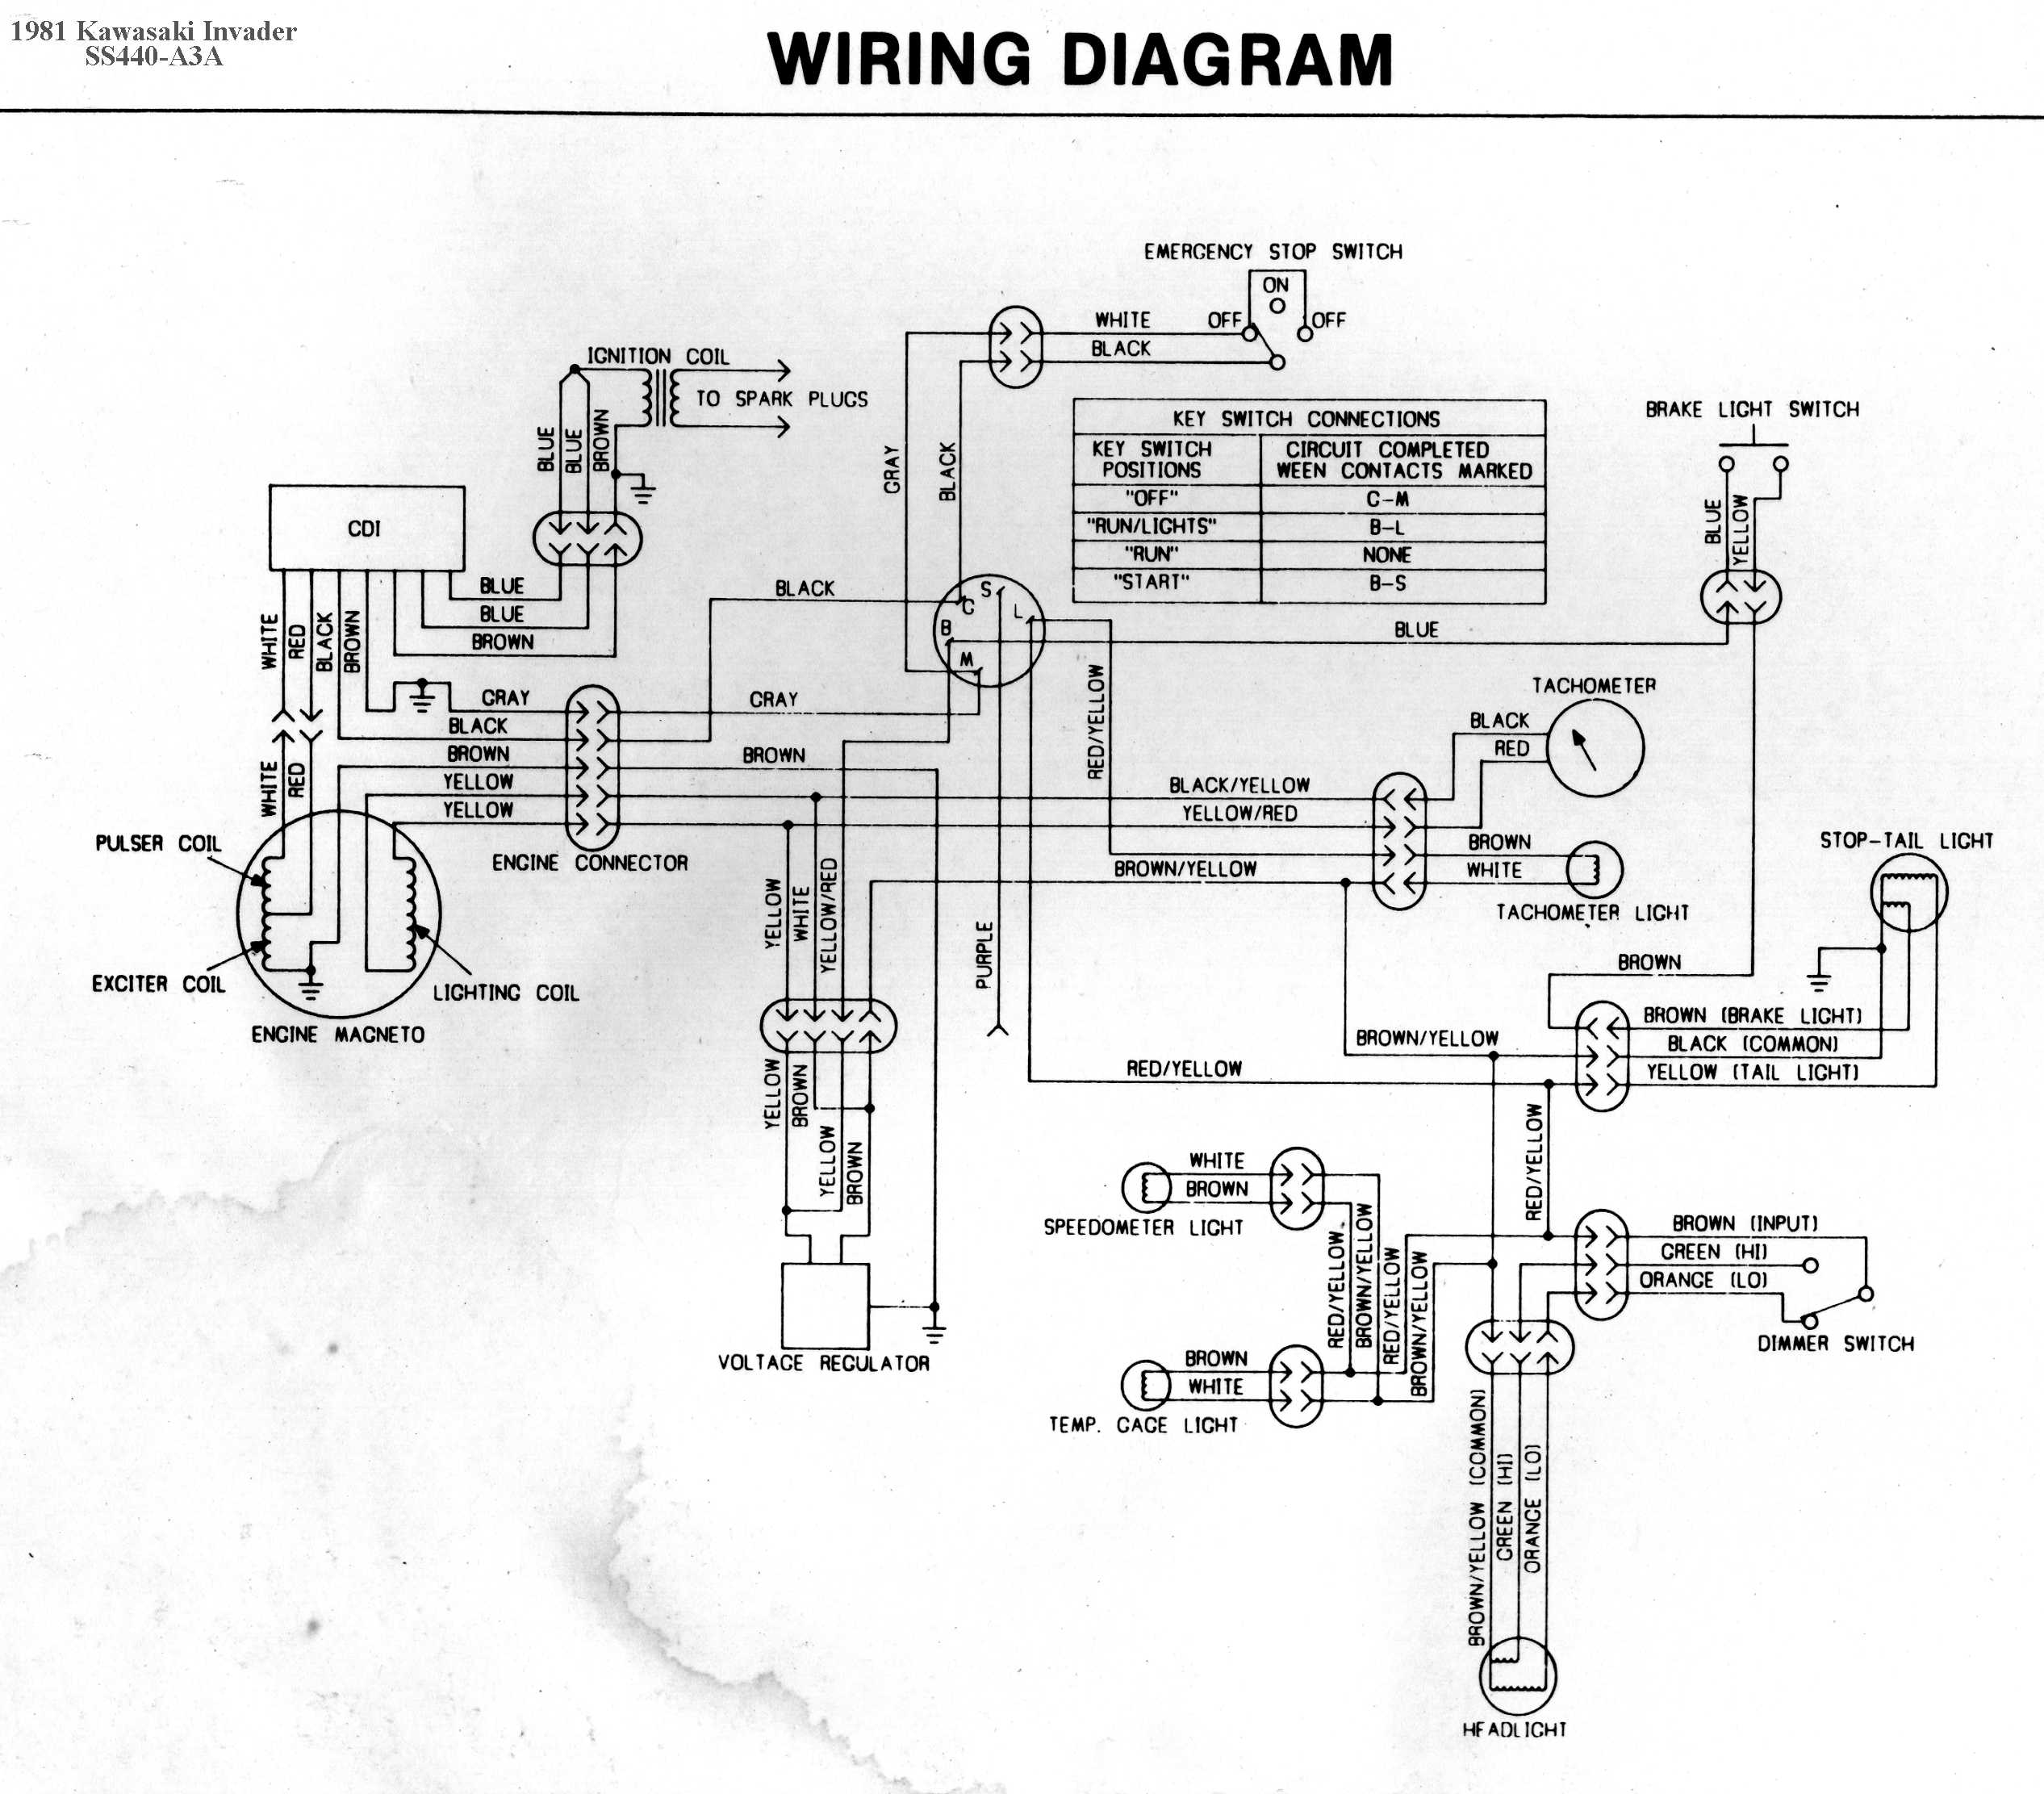 1981 Kawasaki 440 Intruder Wiring Diagram 41 Images For Mule 4010 Invader Snowmobile Diagrams